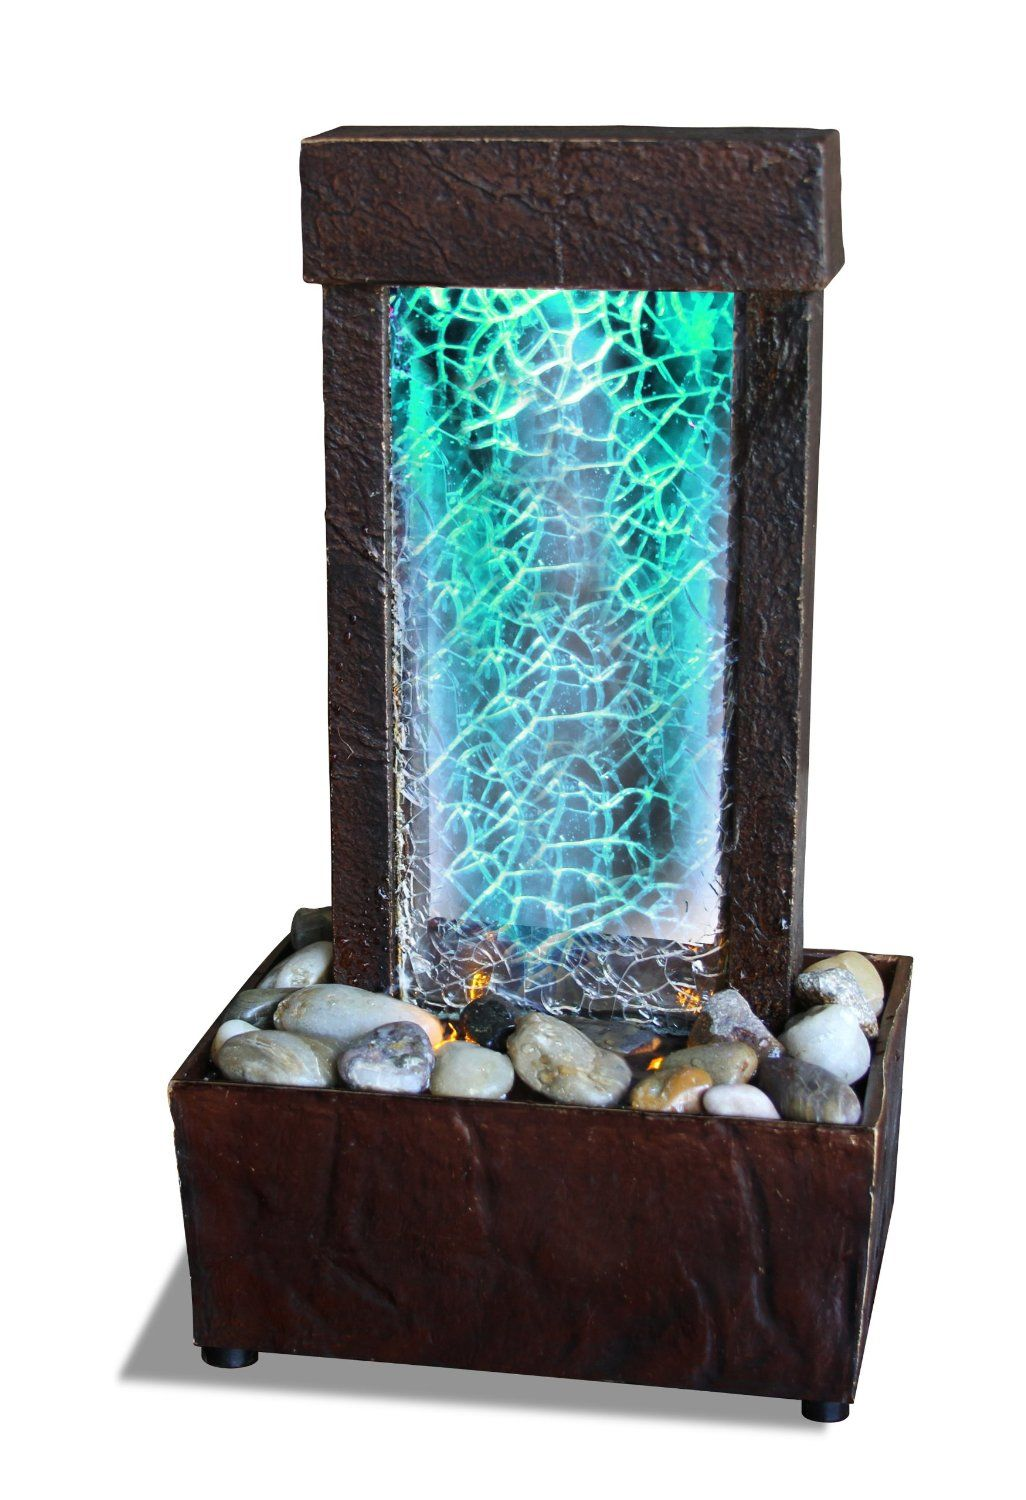 cracked glass light show led indoor fountain tabletop fountains - Tabletop Fountains